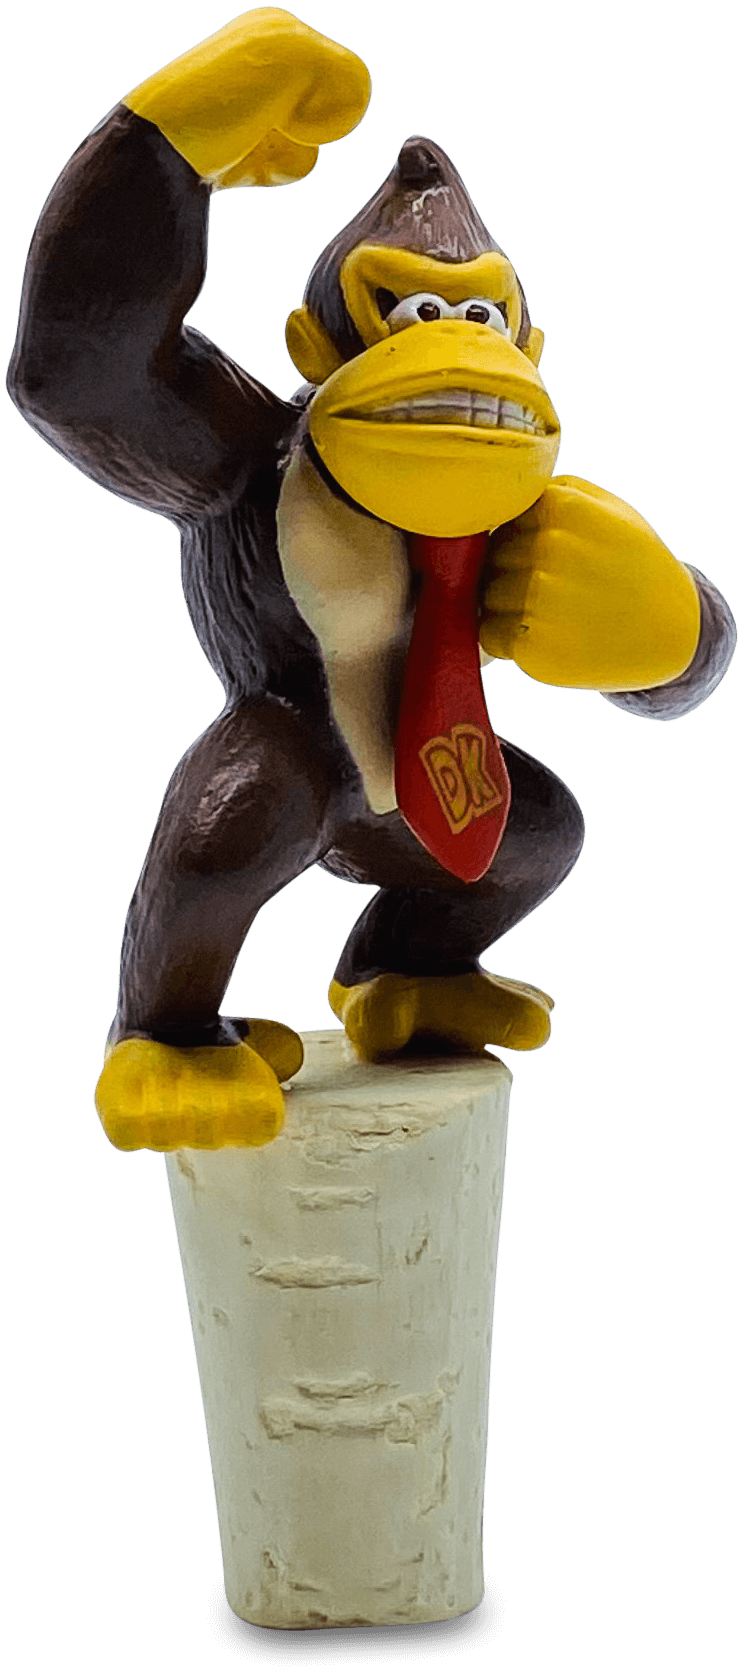 Strong Kong · Blitz 7 - Vinsupernaturel